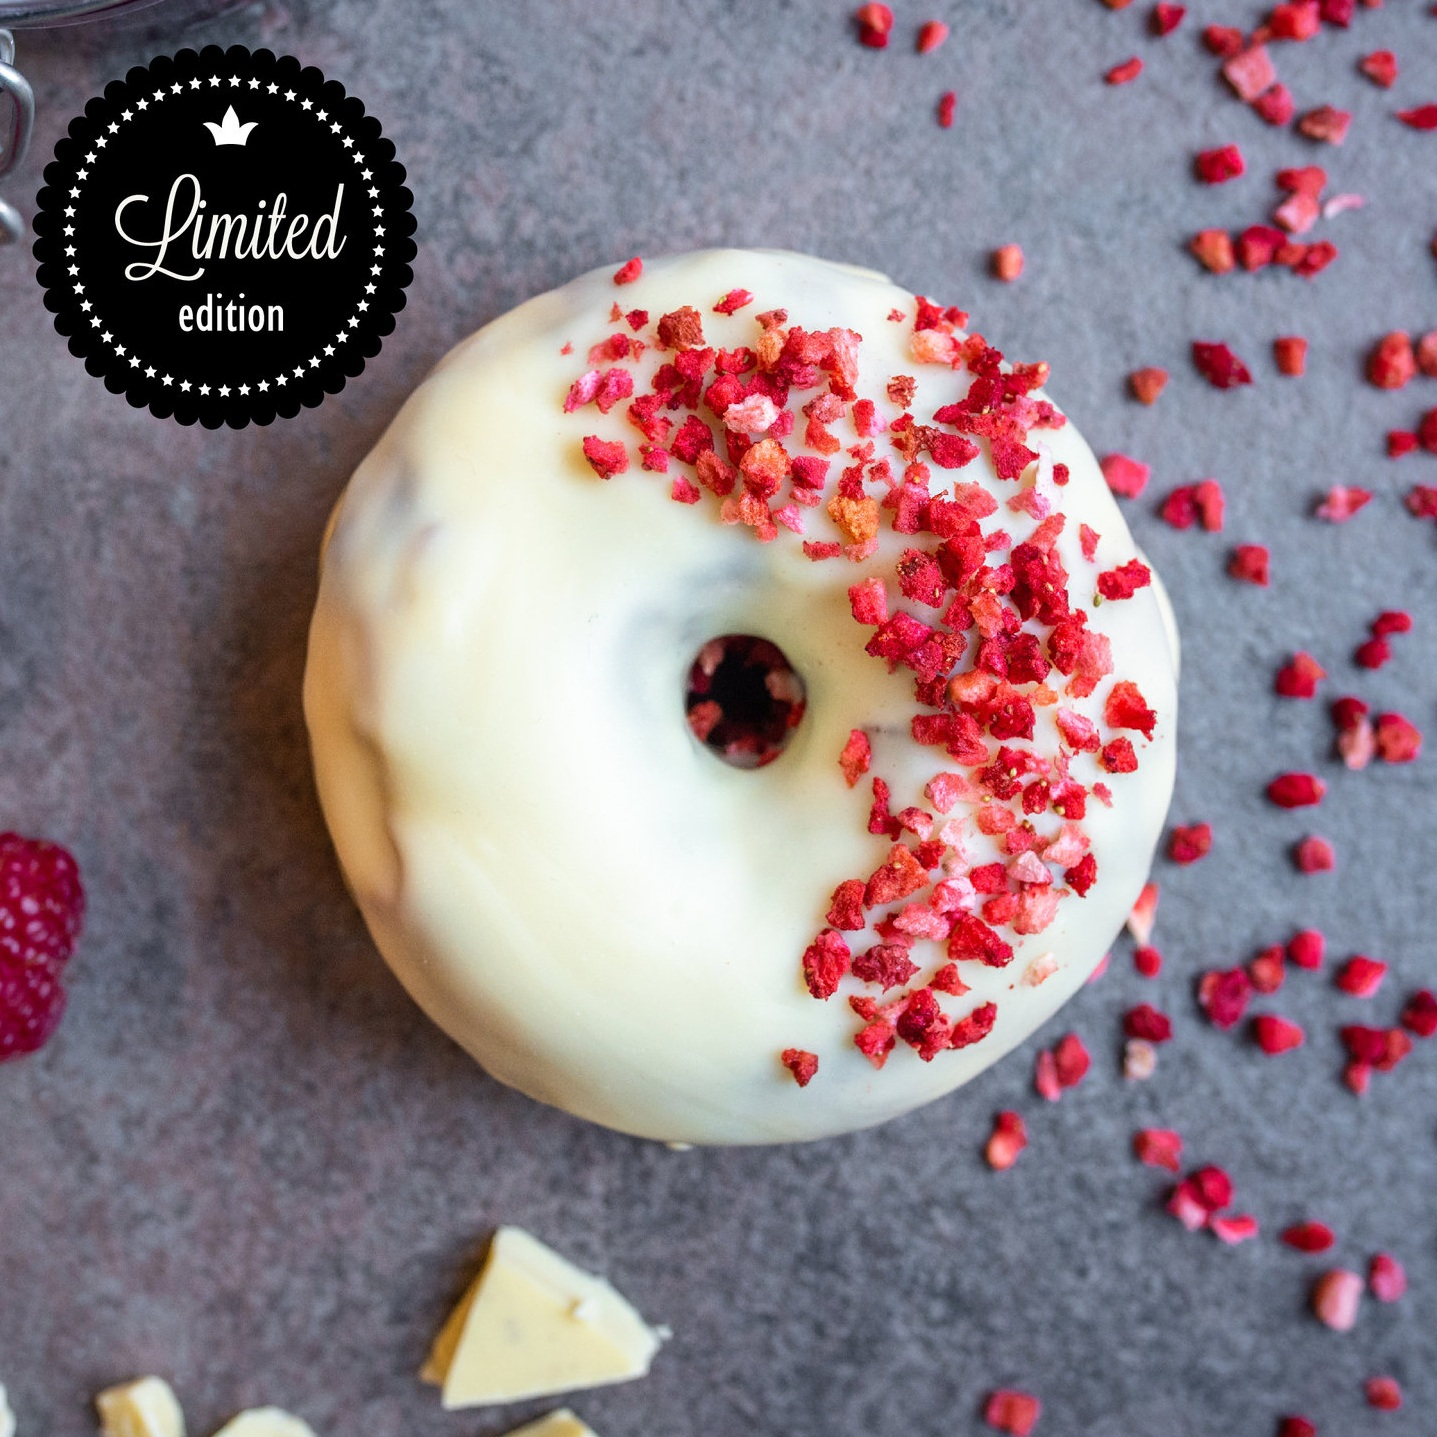 White Chocolate Ring - Signature sour dough wrapped in white chocolate with a half coating of freeze dried raspberries.*Allergen advice